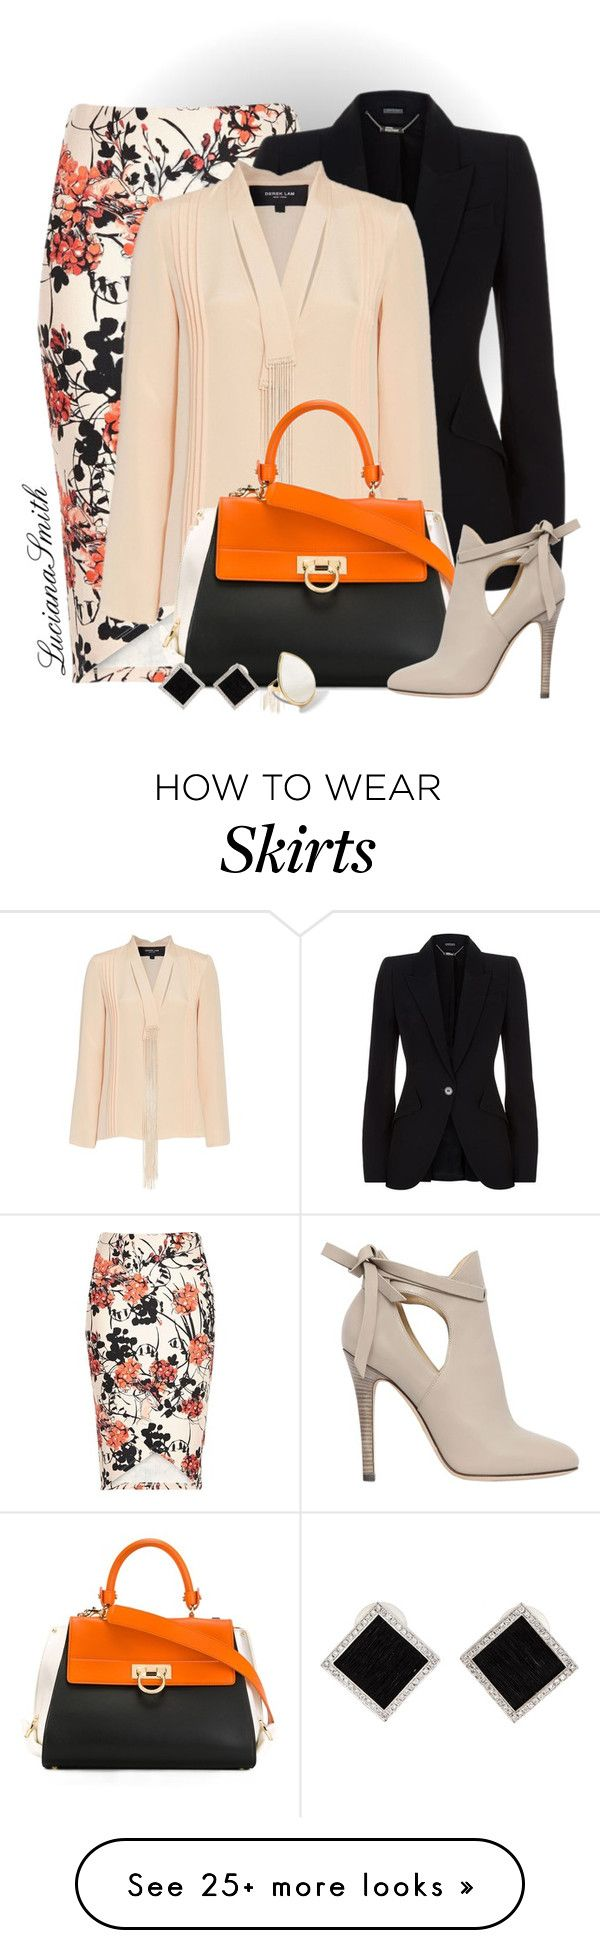 """""""Ankle Boots & Percil Skirt"""" by lucianasmith on Polyvore featuring River Island, Alexander McQueen, Derek Lam, Salvatore Ferragamo, Jimmy Choo, Ippolita and Yvel"""